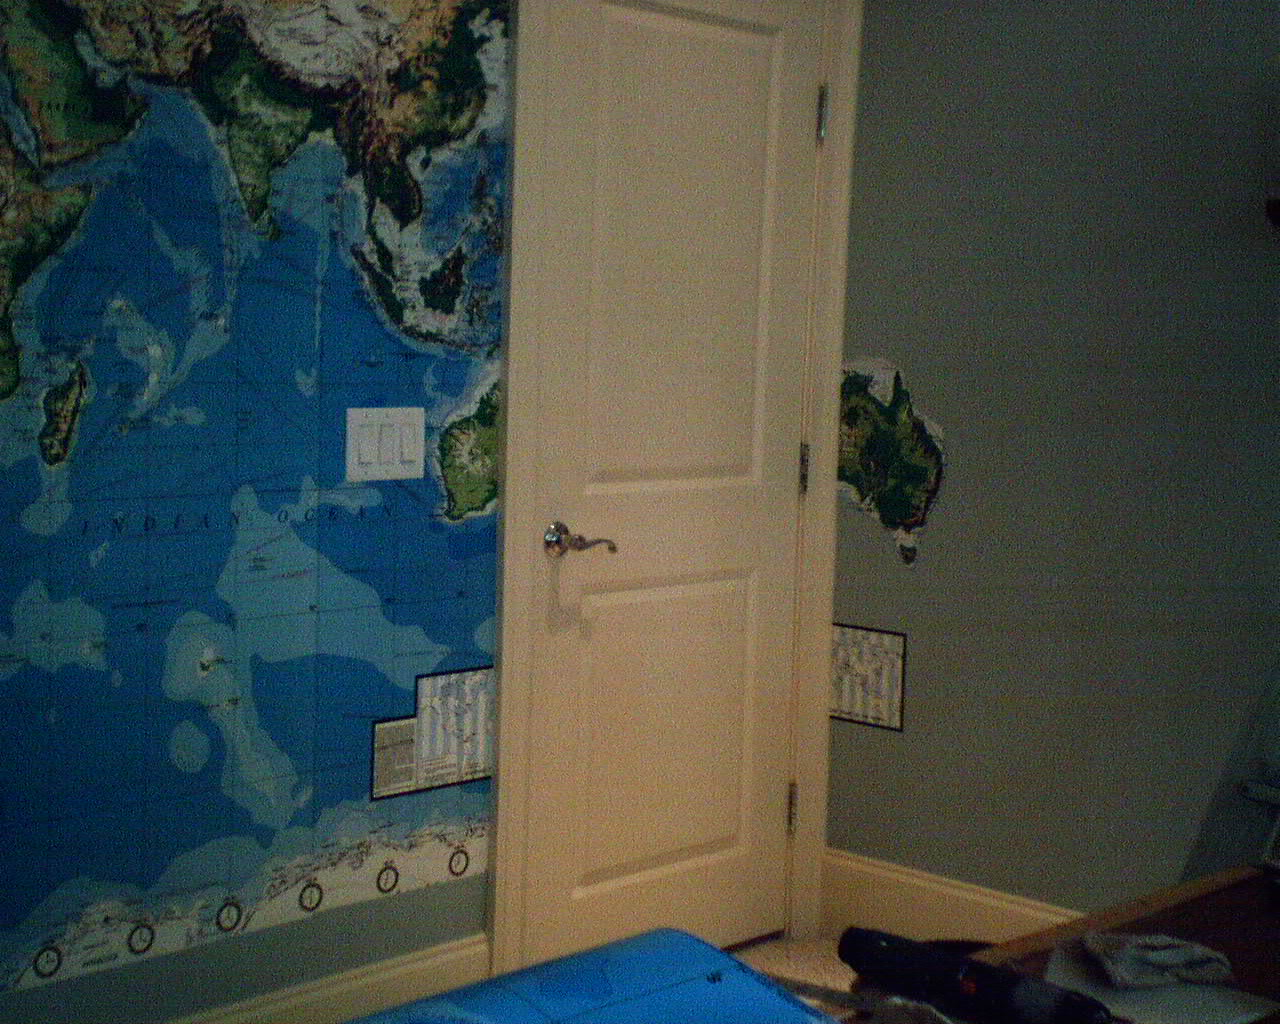 Pottery barn wallpaperladys blog as this world map mural worked its way around the wall australia got cut off by the door gumiabroncs Gallery